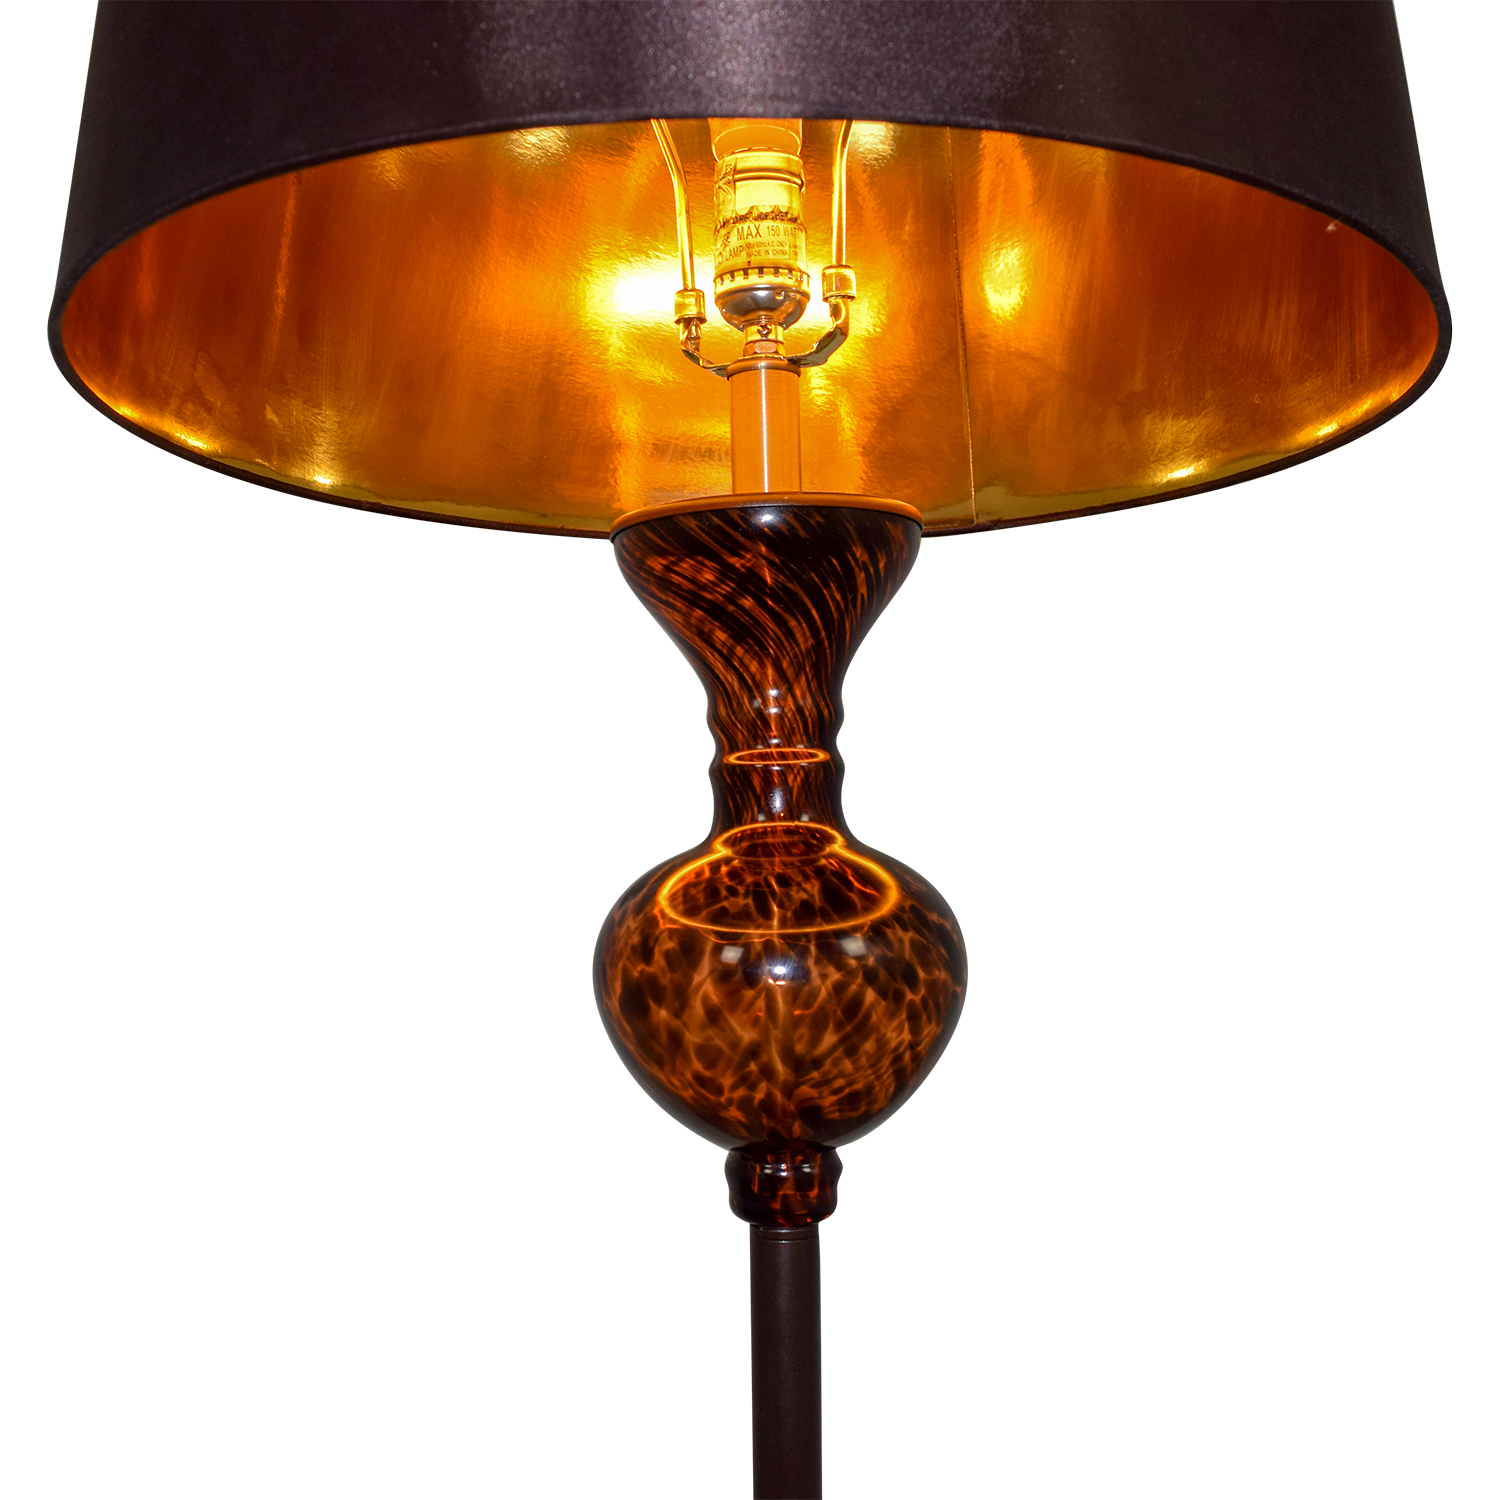 78 Off Pier 1 Imports Amber Tall Lamp Decor